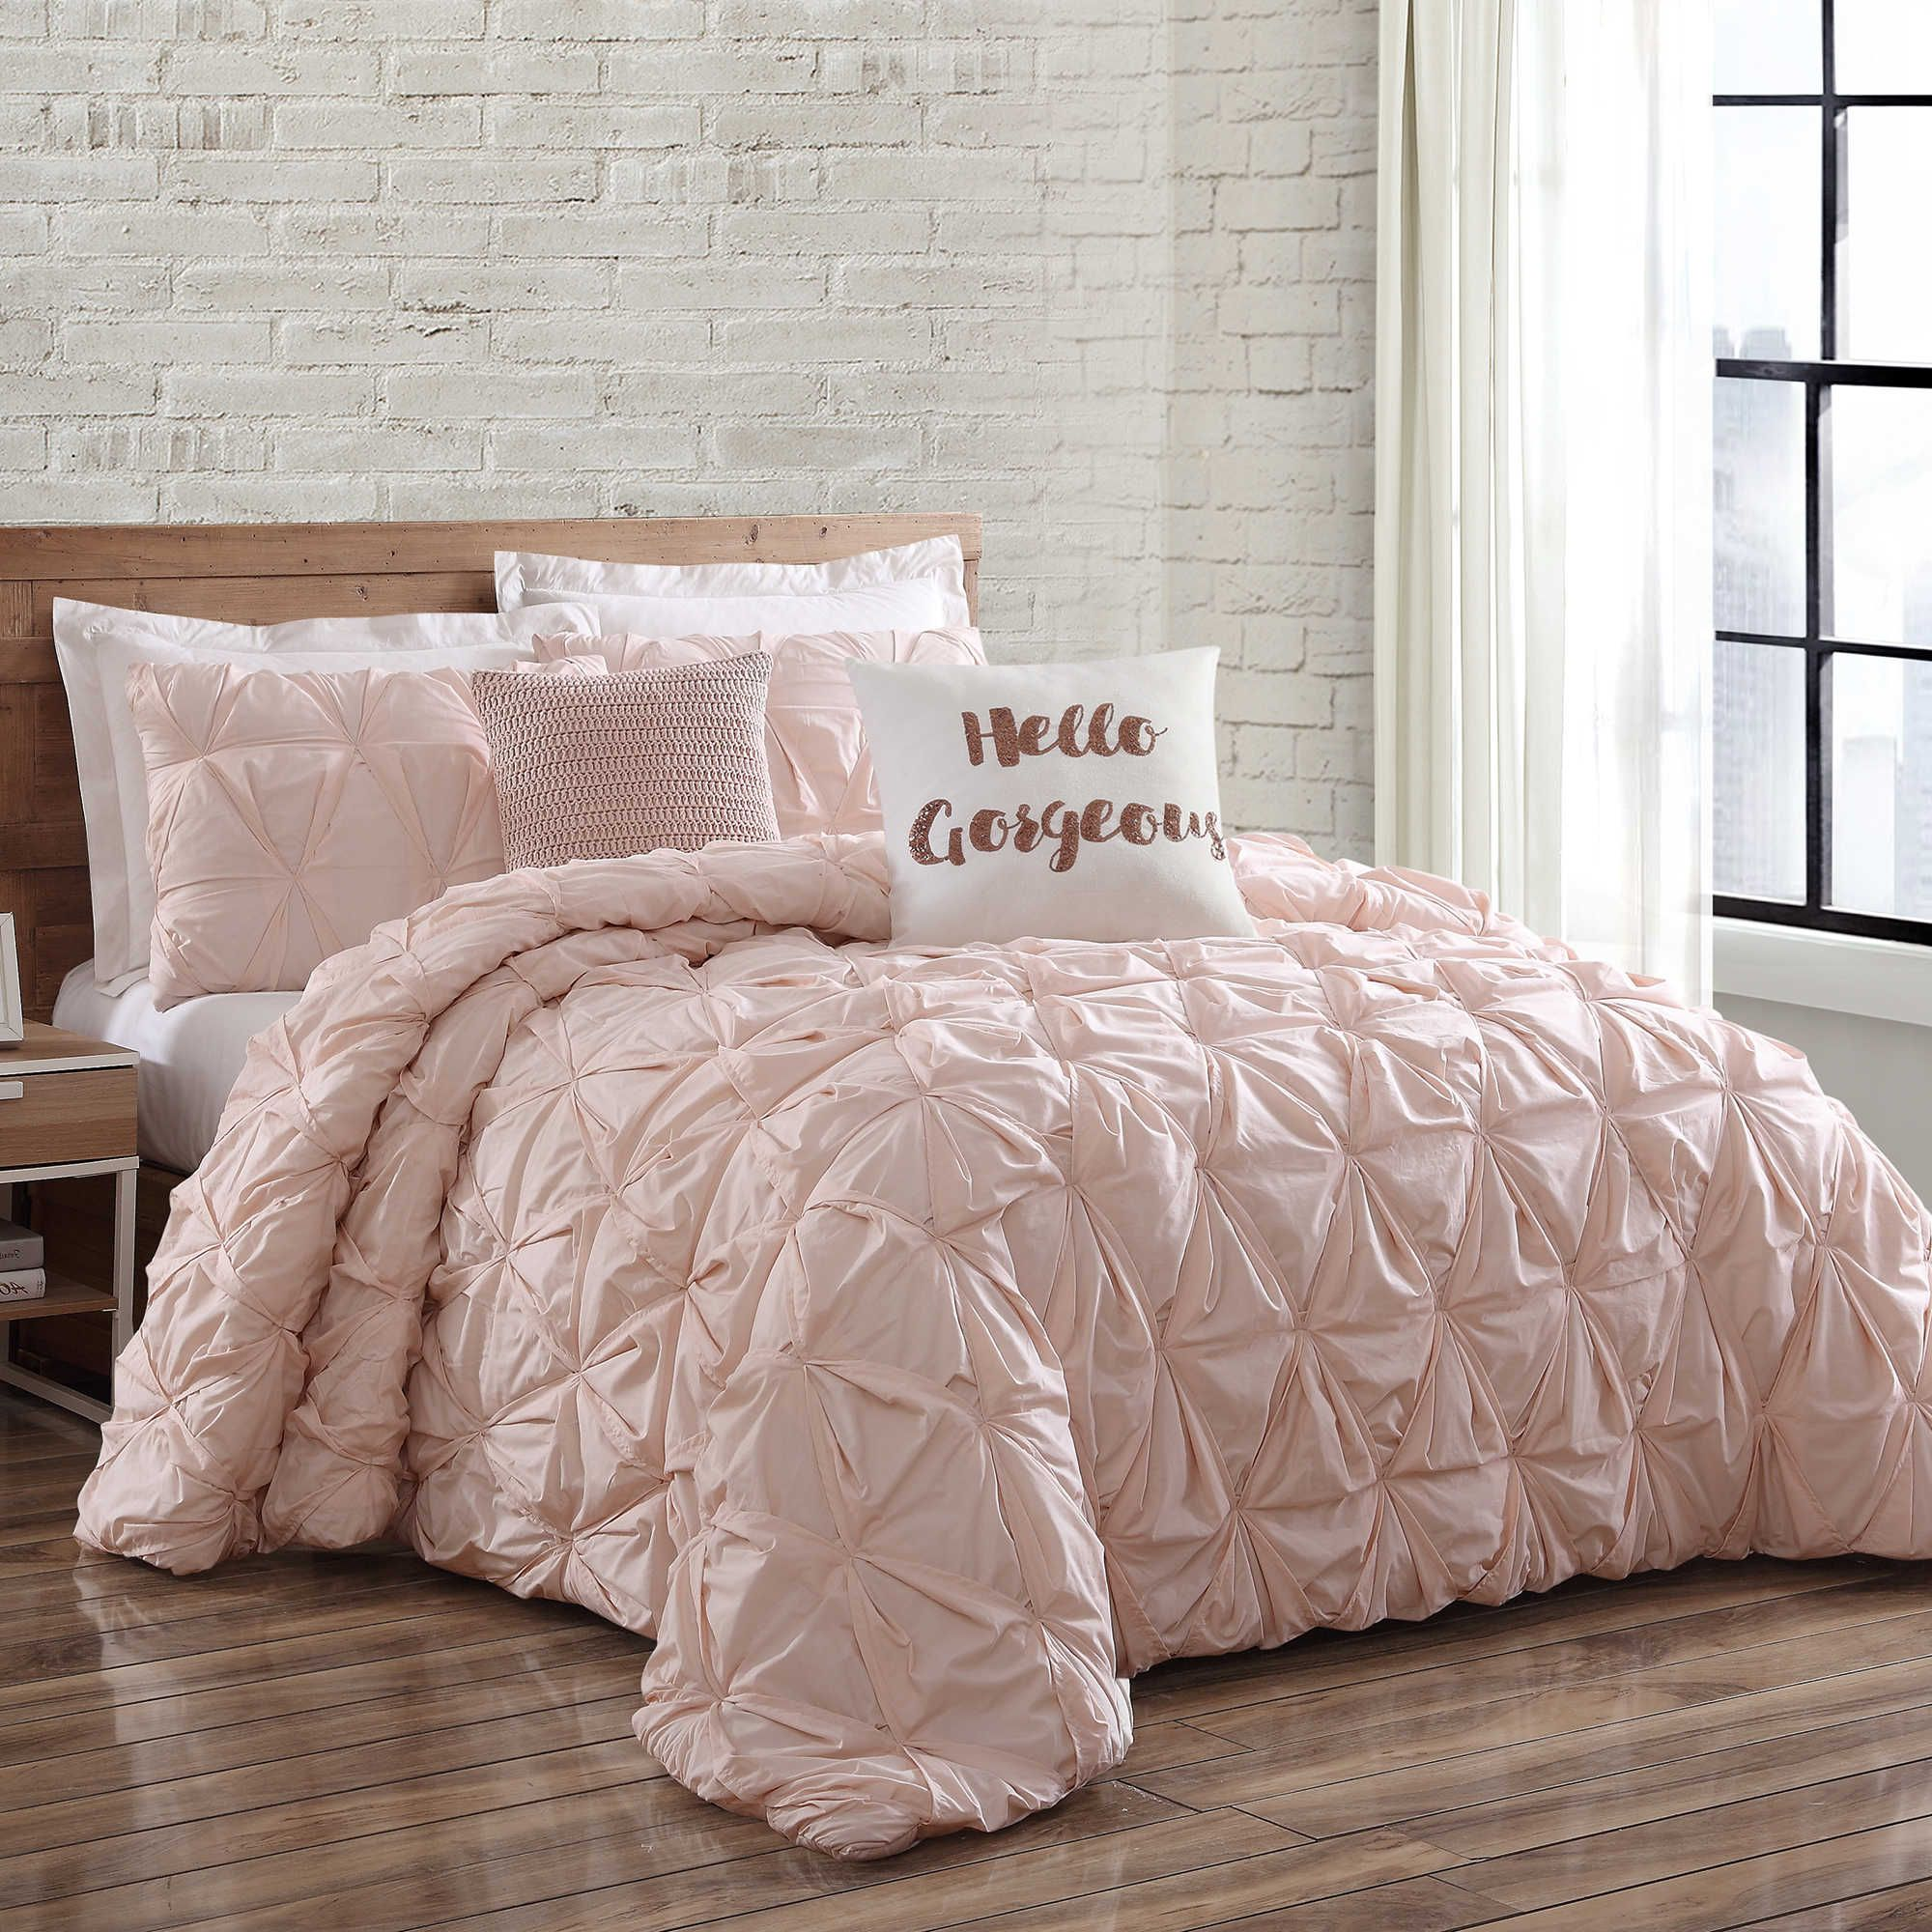 Brooklyn Loom Jackson Pleat King Comforter Set in Blush wendy